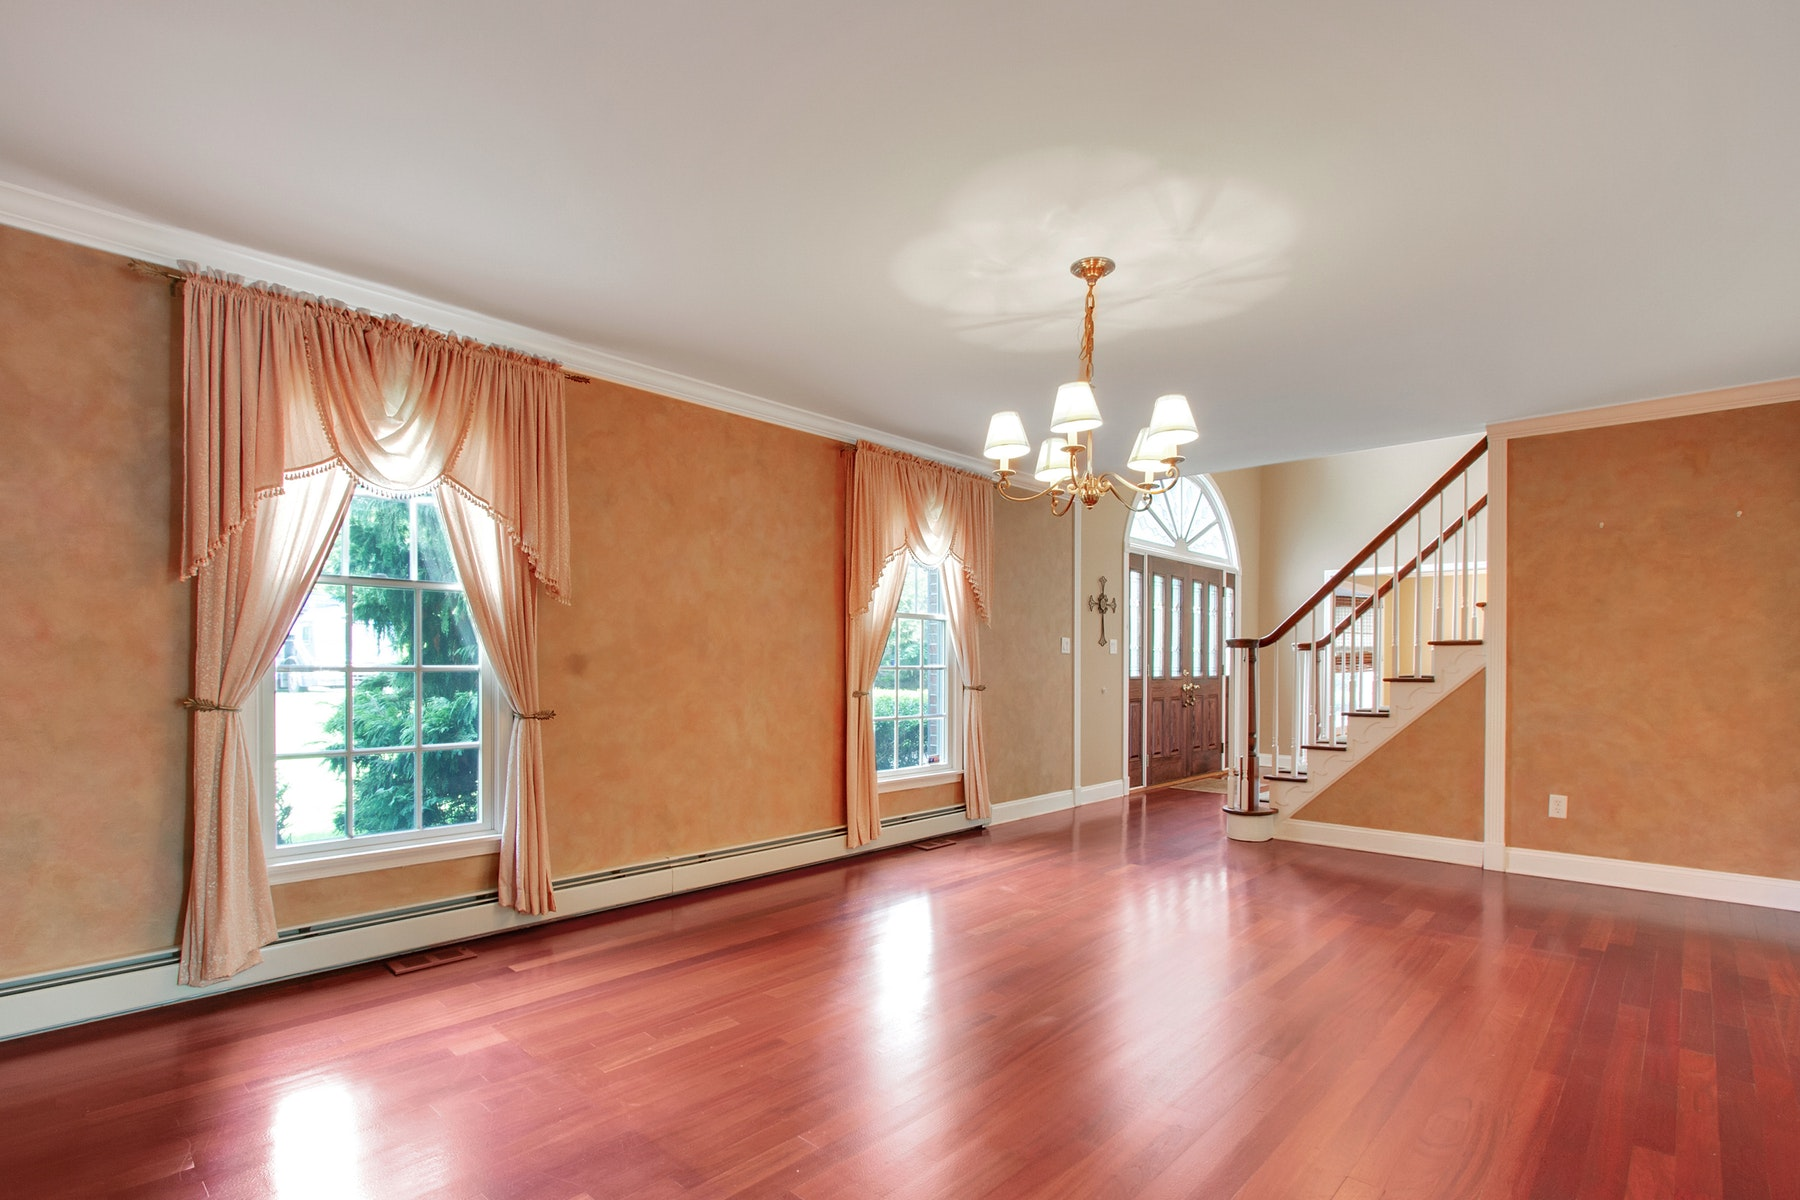 Additional photo for property listing at Stunning Colonial 22 Fireside Drive, Colts Neck, New Jersey 07722 Vereinigte Staaten